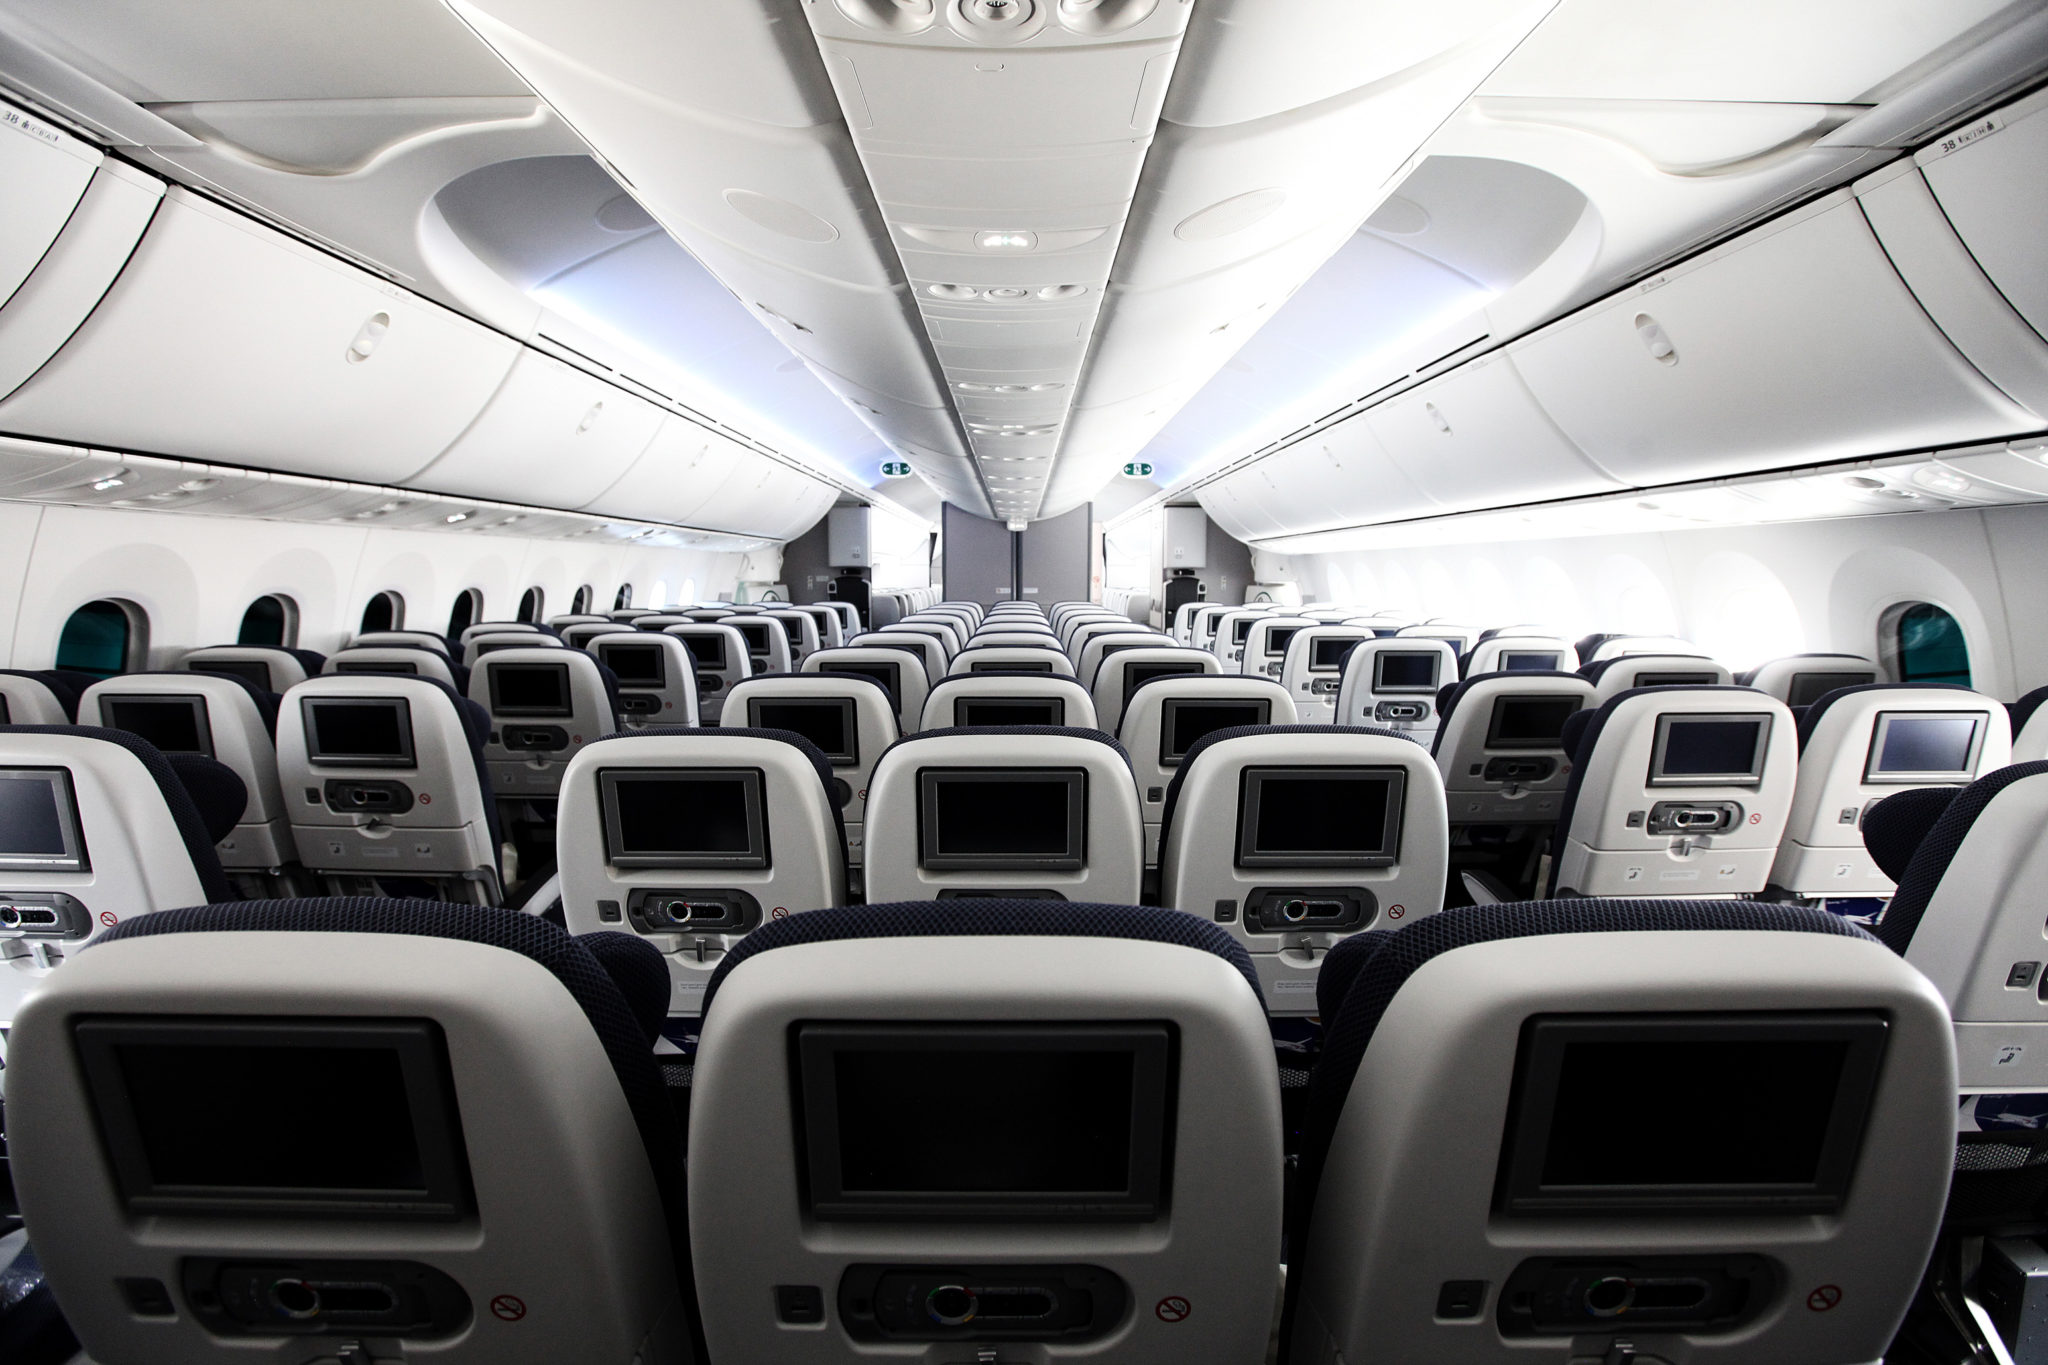 BA's 777 fleet will be just as squashed as its unpopular Dreamliners which it has already had to reconfigure. Image: BA